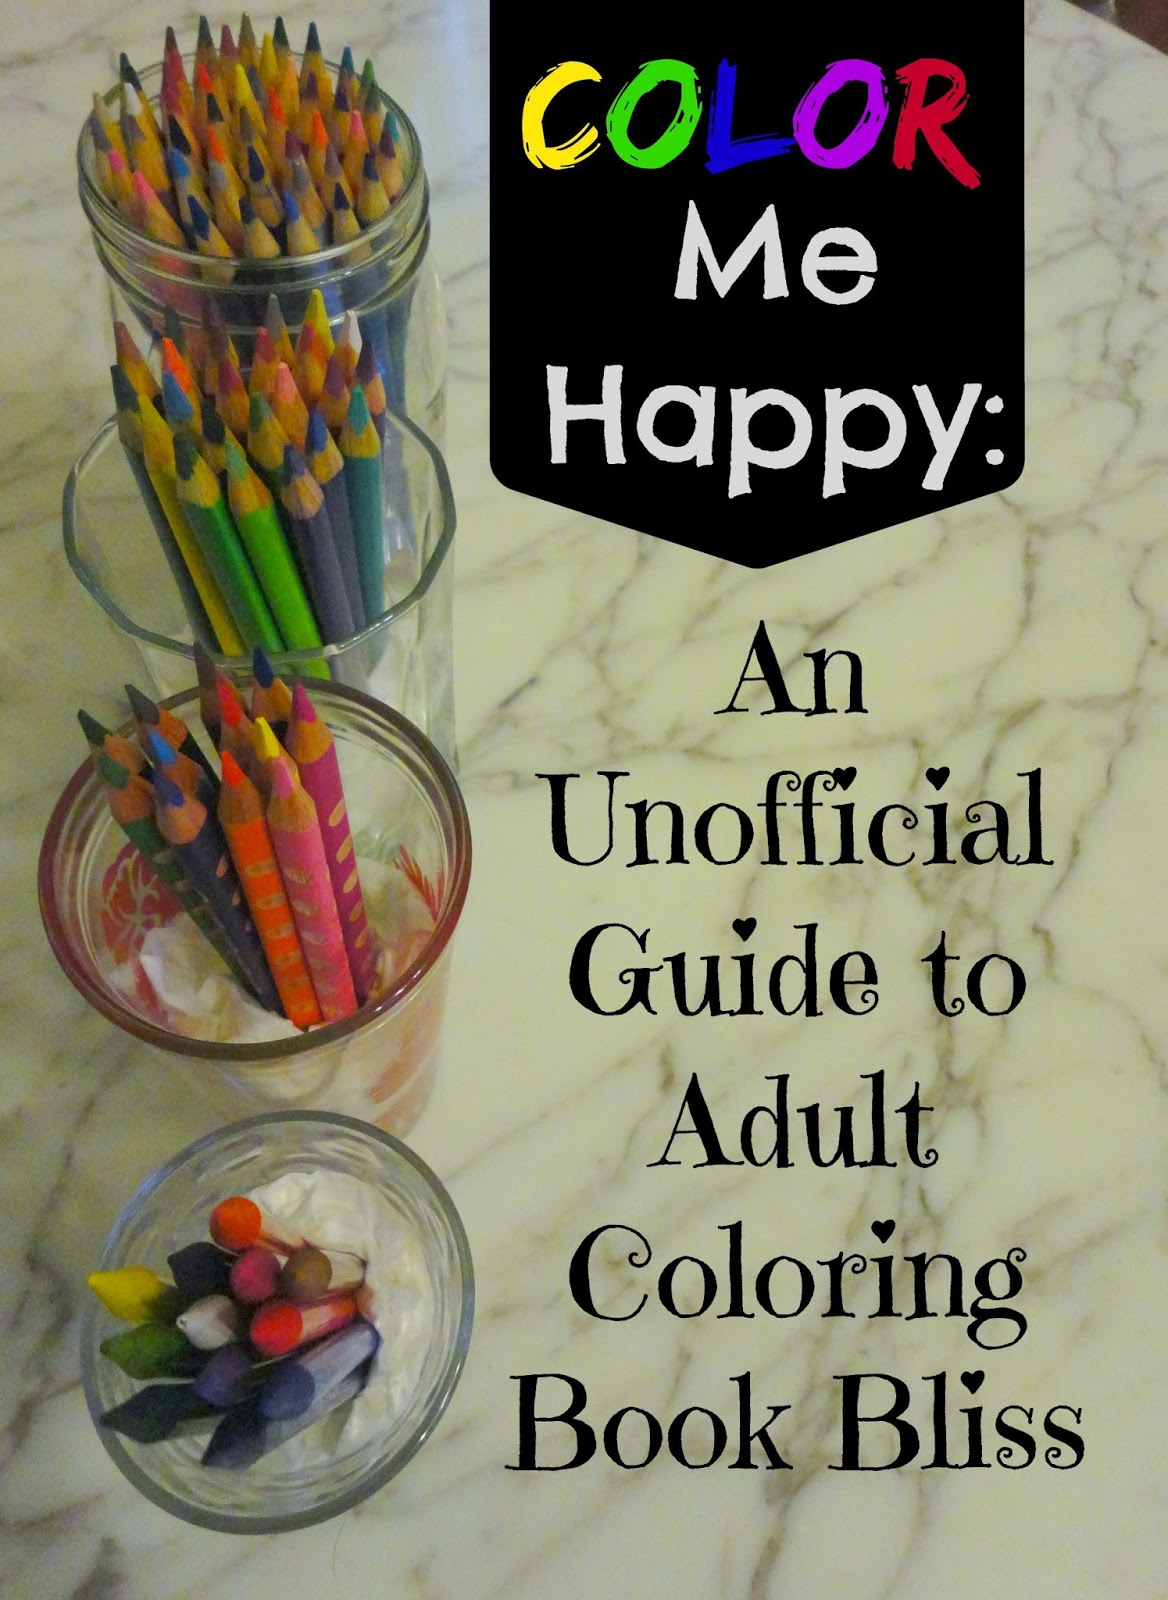 Color Me Happy An Unofficial Guide To Adult Coloring Book Bliss